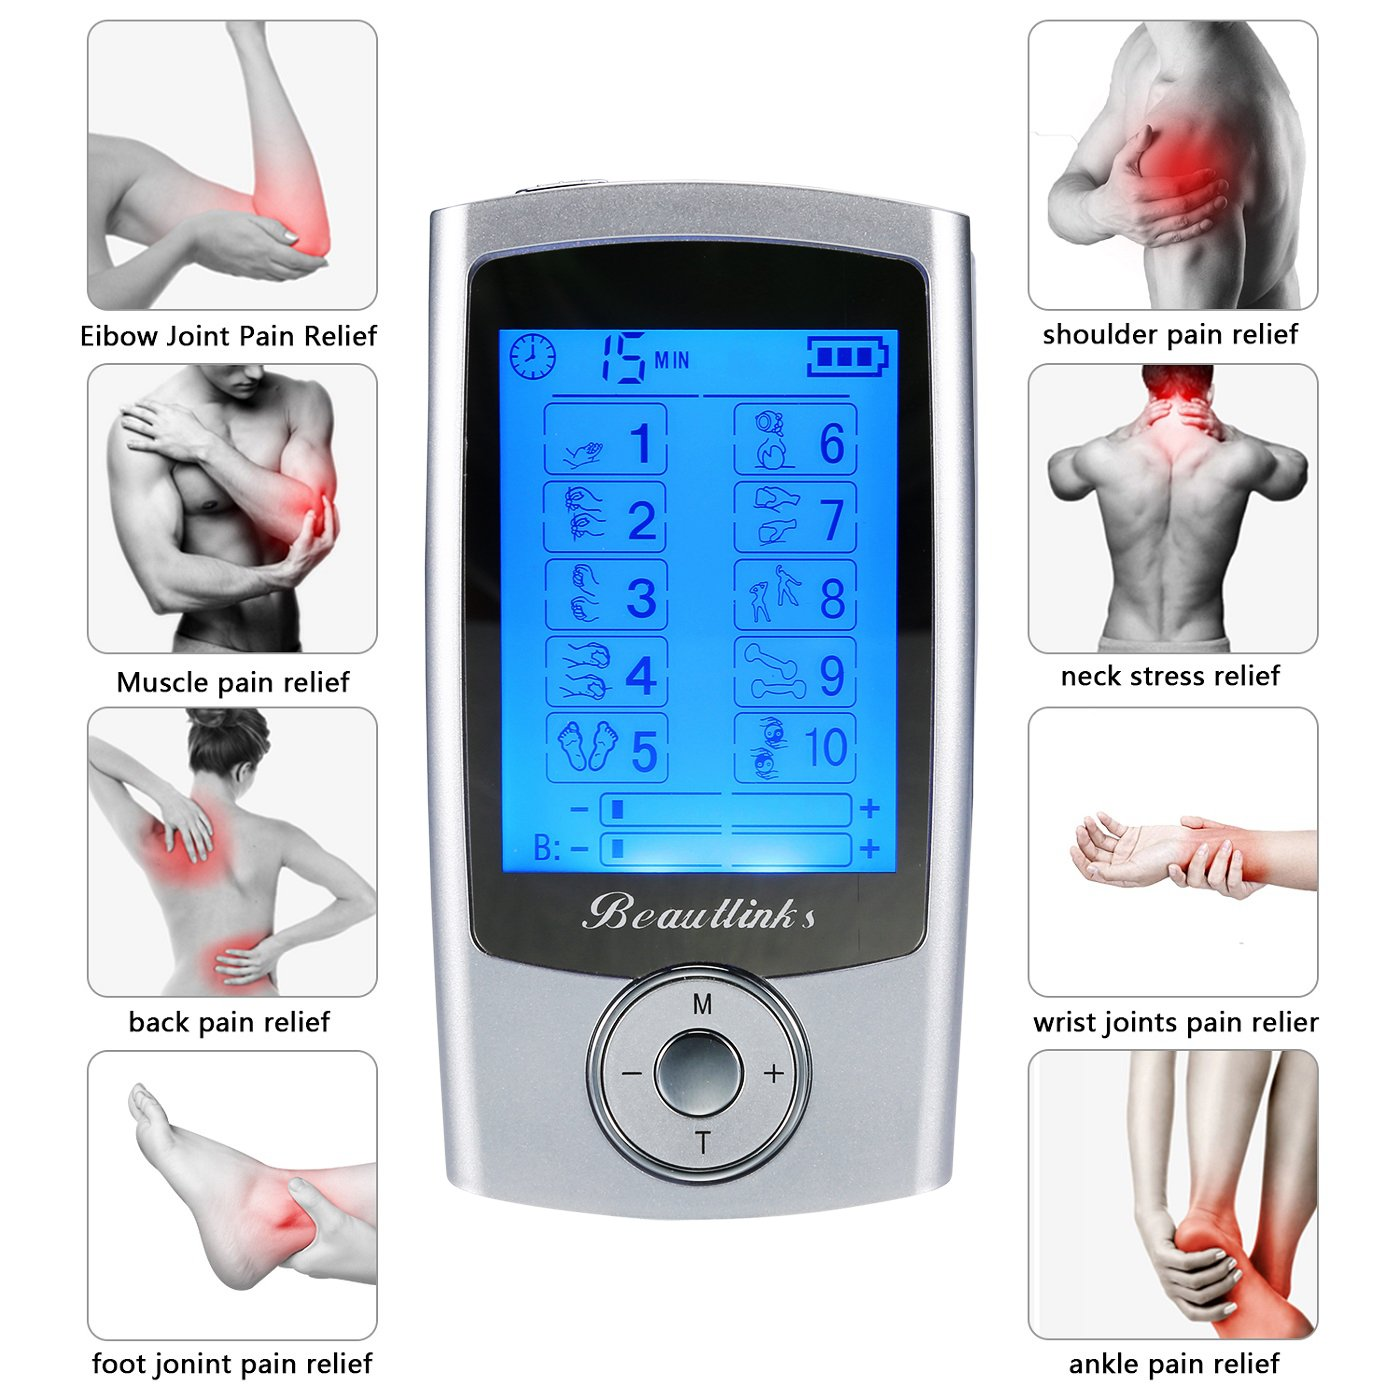 Rechargeable FDA Cleared TENS Units Muscle Stimulator, EMS TENS Machine with 8 Pads Independent-Control A/B Channel for Pain Management and Rehabilitation Muscle Relief (Sliver)